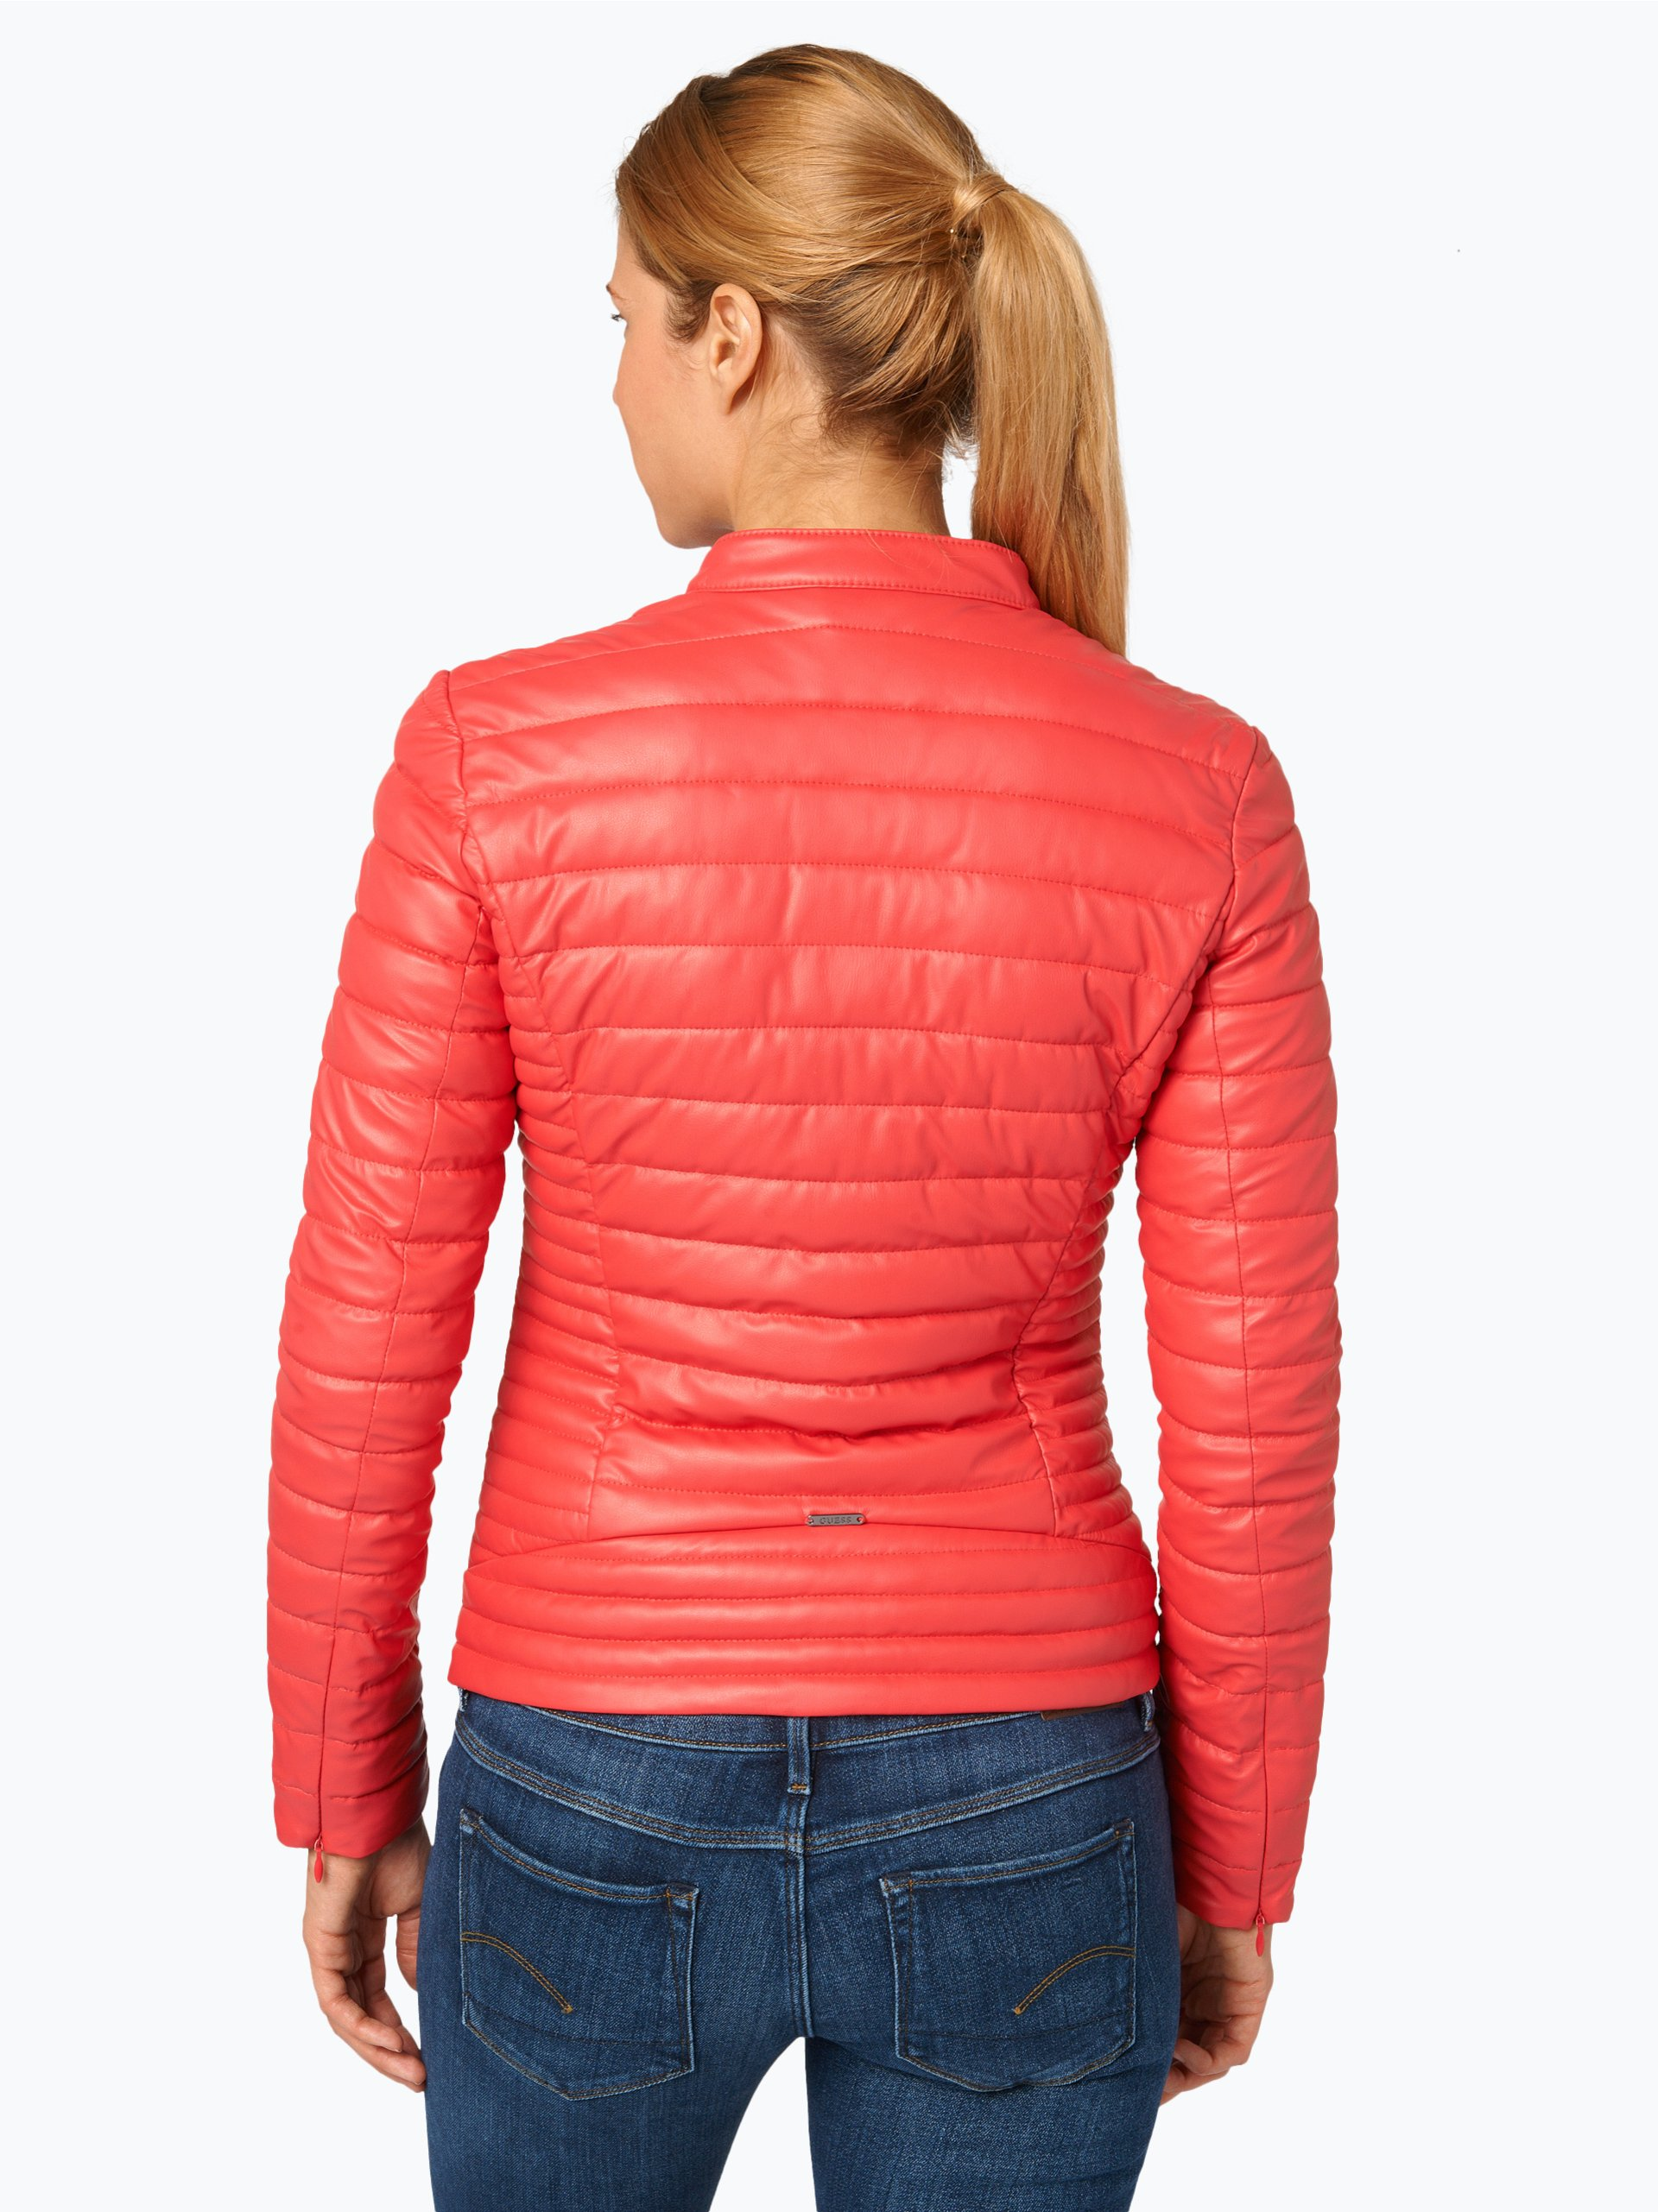 guess jeans damen steppjacke in leder optik rot uni online kaufen vangraaf com. Black Bedroom Furniture Sets. Home Design Ideas